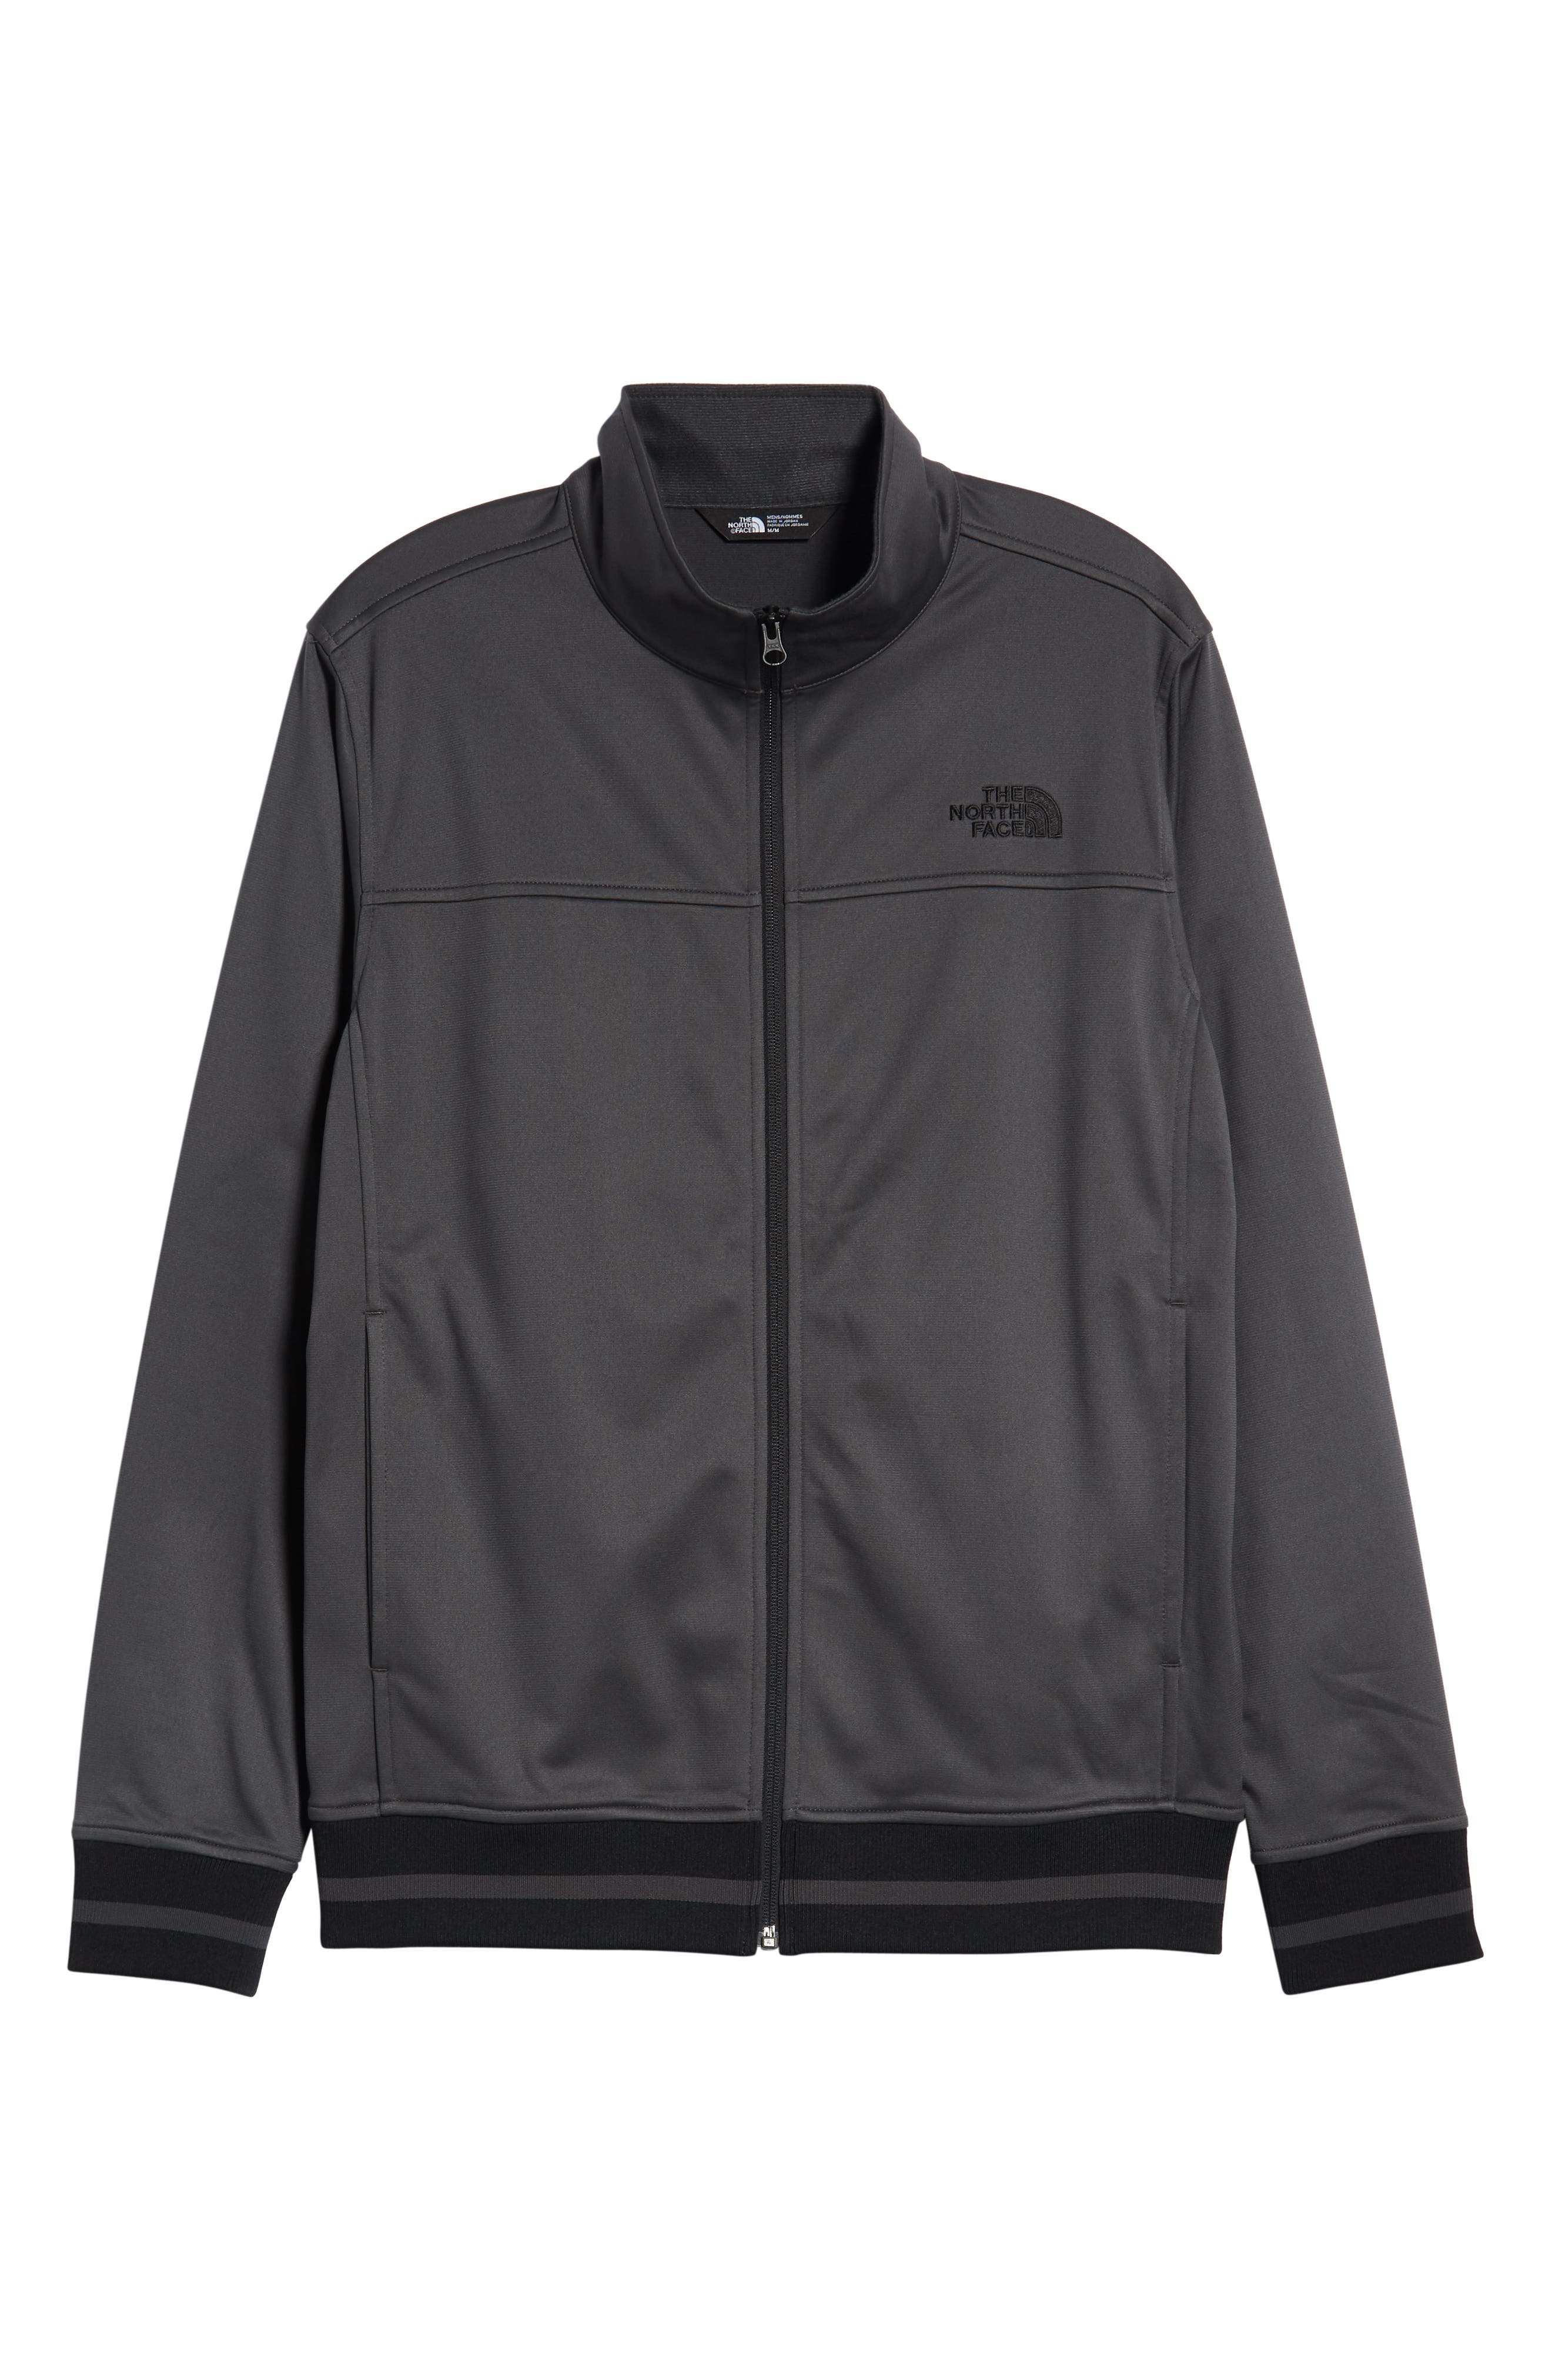 Alphabet City Track Jacket,                             Alternate thumbnail 6, color,                             ASPHALT GREY